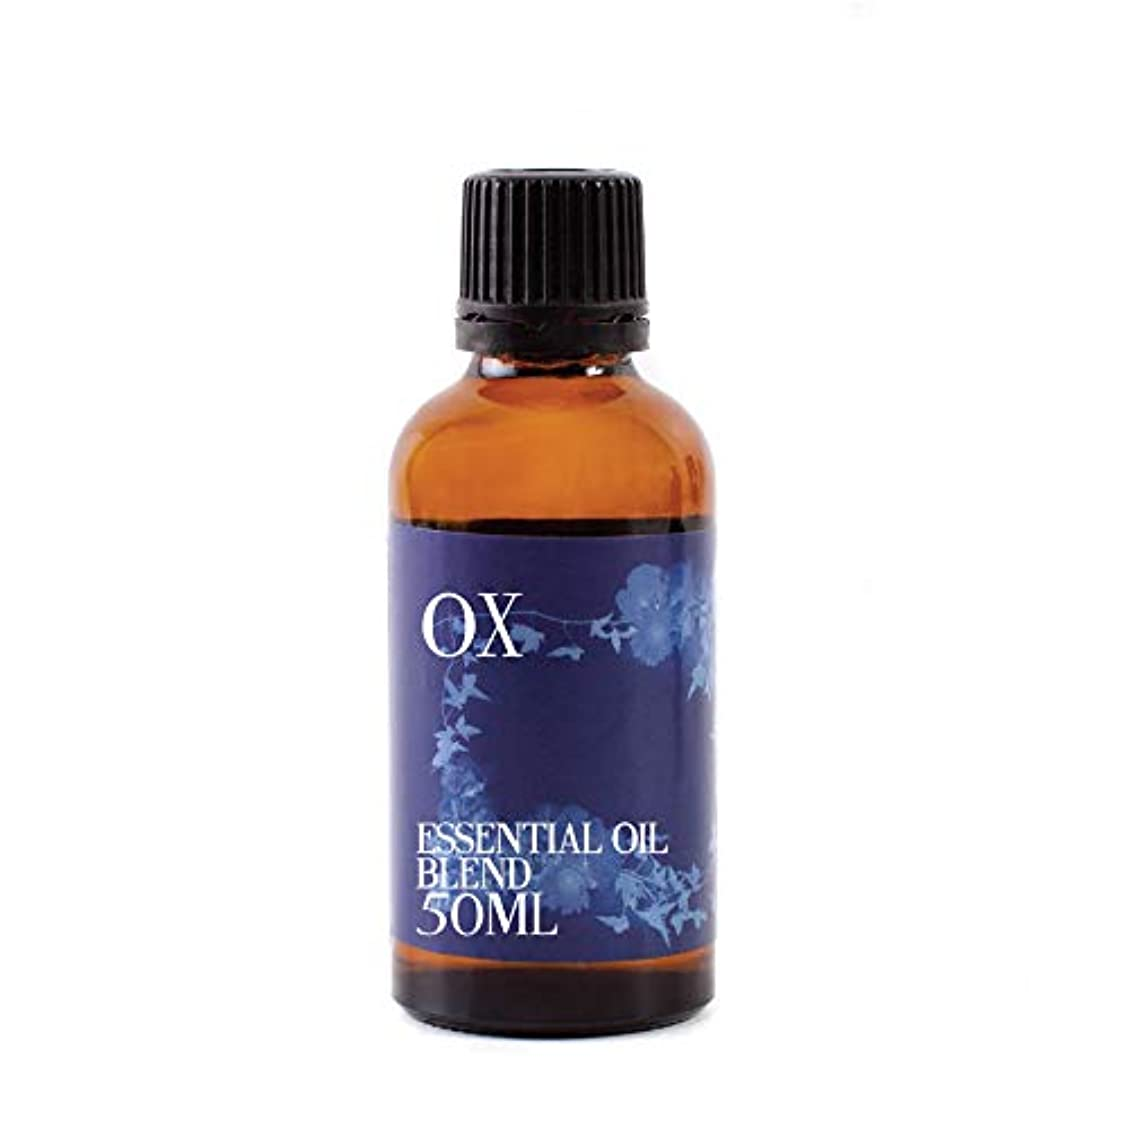 調和のとれたに関してプロフィールMystix London | Ox | Chinese Zodiac Essential Oil Blend 50ml